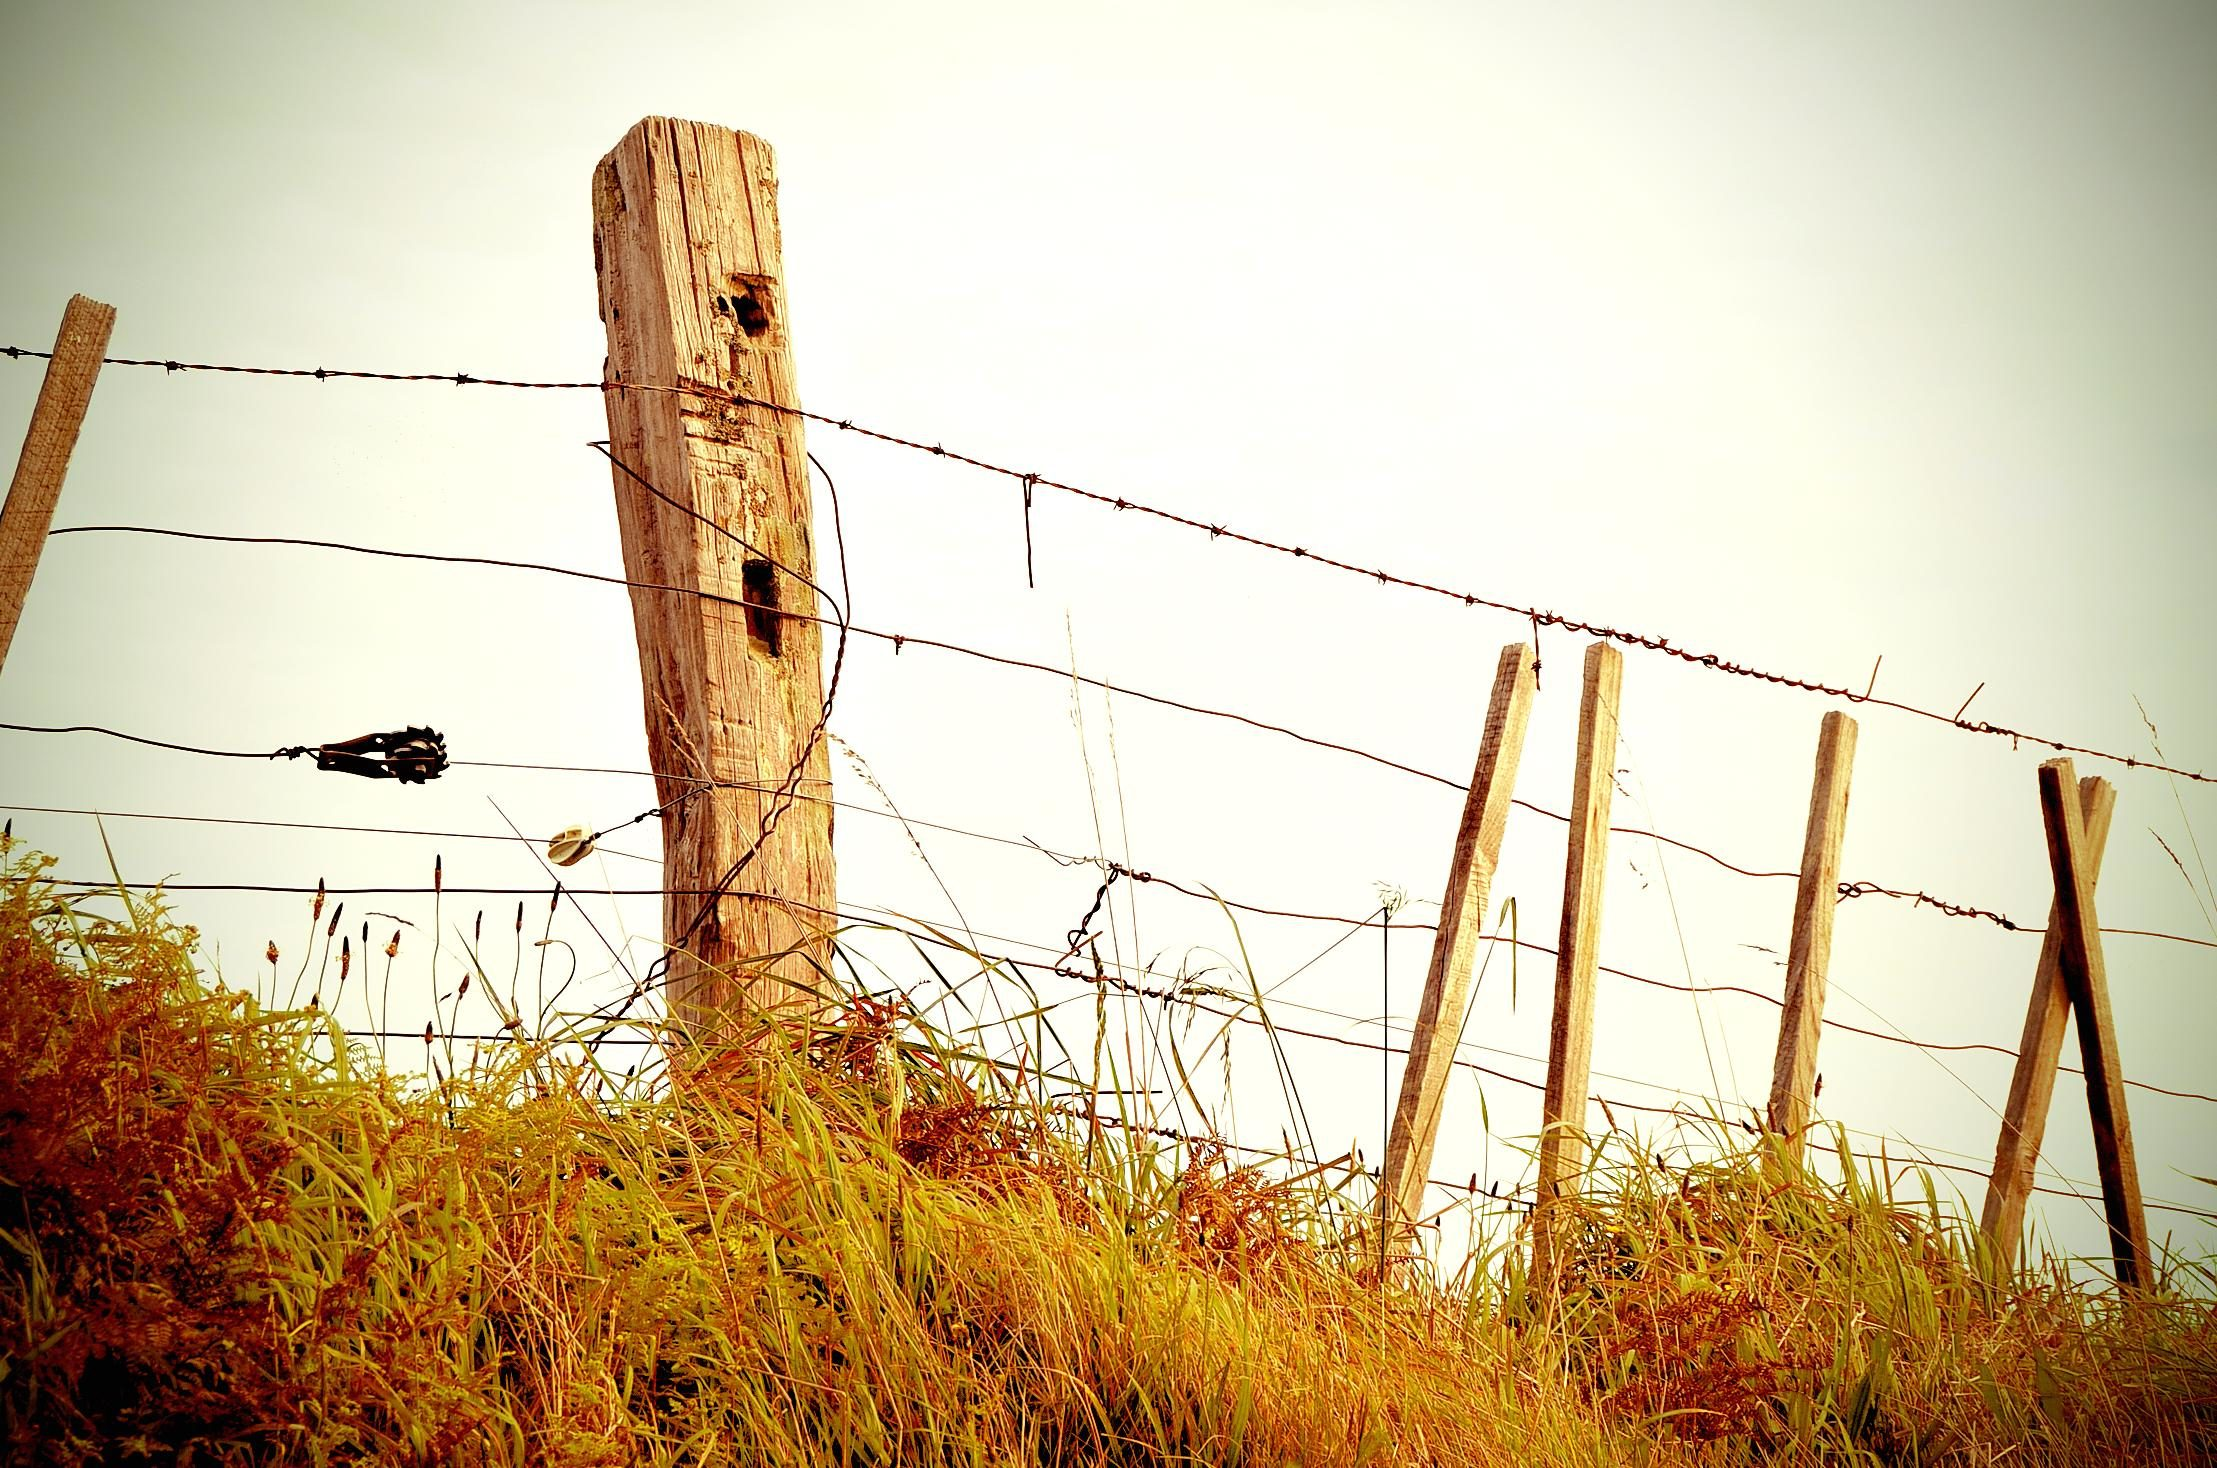 Free picture: barbed wire, fence, grass, wire, sky, wood, rural